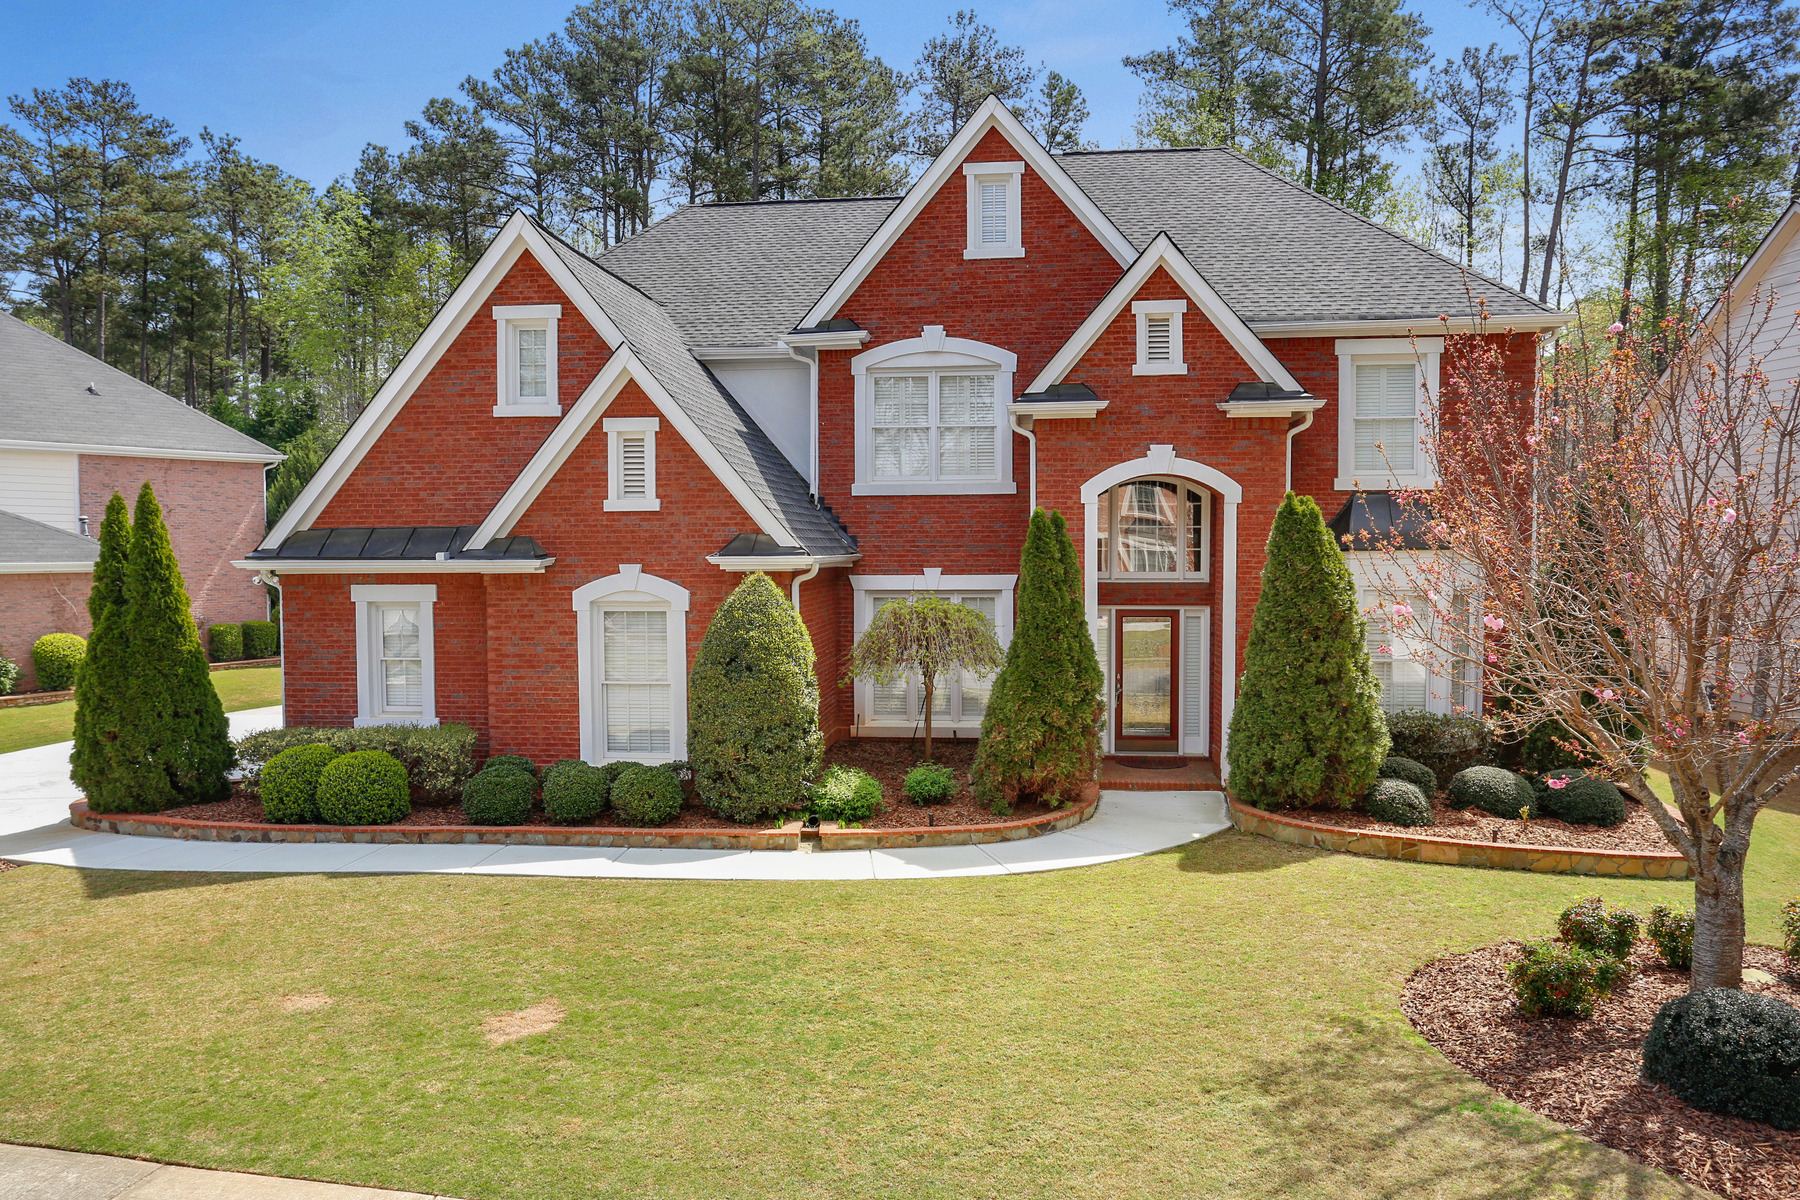 Casa Unifamiliar por un Venta en Beautifully Maintained Three-sided Brick Home 1045 Beacon Hill Crossing Alpharetta, Georgia, 30005 Estados Unidos